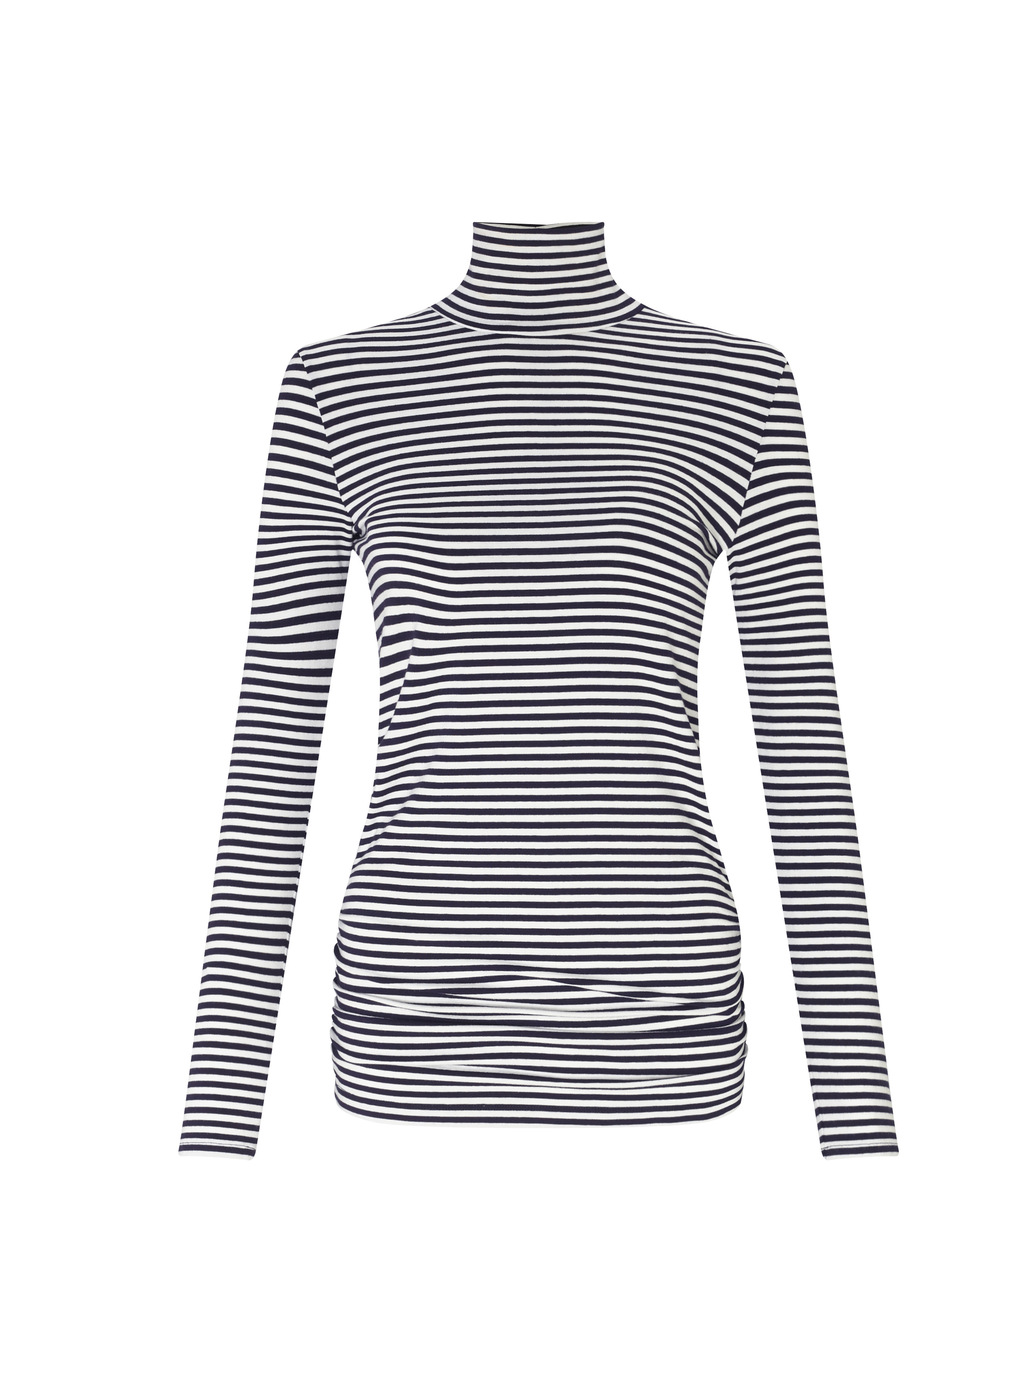 Womenswear Franklin Turtleneck Top - pattern: horizontal stripes; neckline: high neck; secondary colour: white; predominant colour: navy; occasions: casual; length: standard; style: top; fibres: viscose/rayon - stretch; fit: body skimming; sleeve length: long sleeve; sleeve style: standard; pattern type: fabric; texture group: jersey - stretchy/drapey; multicoloured: multicoloured; wardrobe: basic; season: a/w 2016